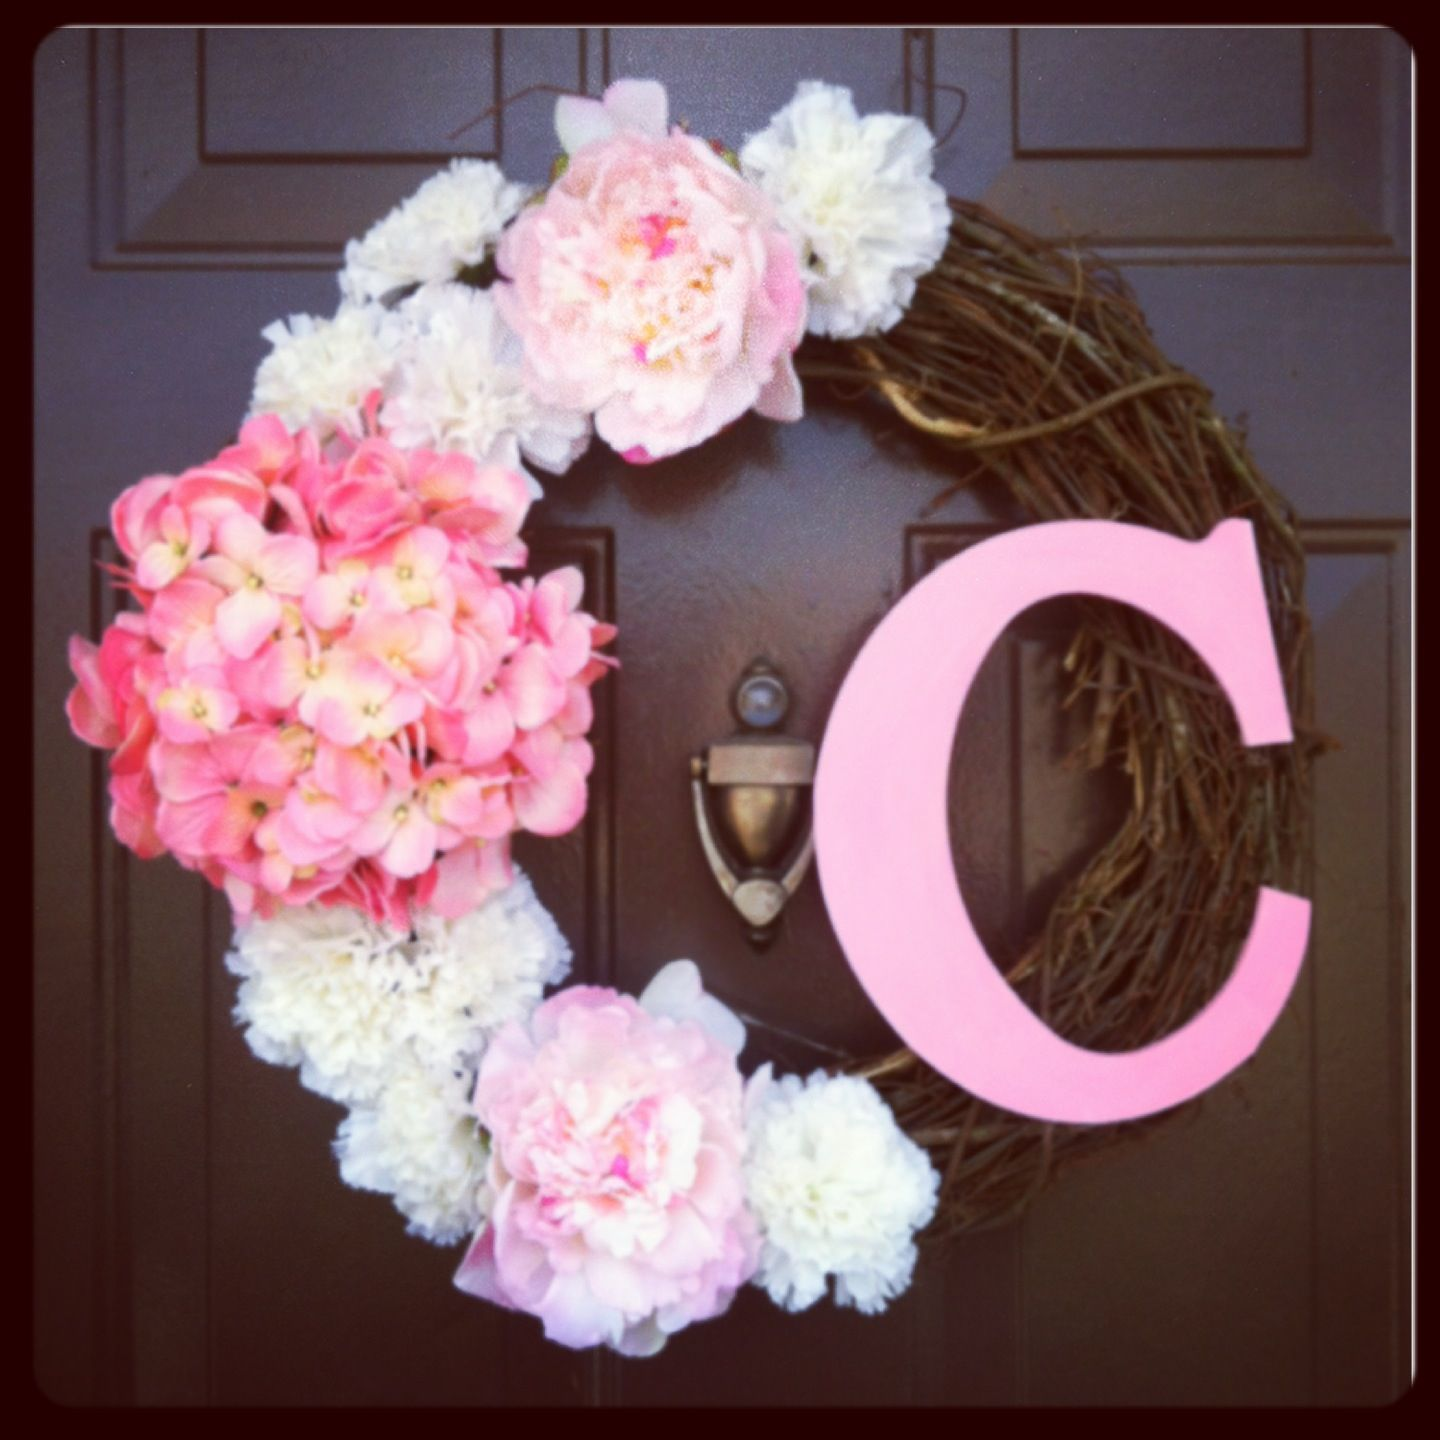 Hot Glue Fake Flowers And Wood Letter Painted To Match Onto A